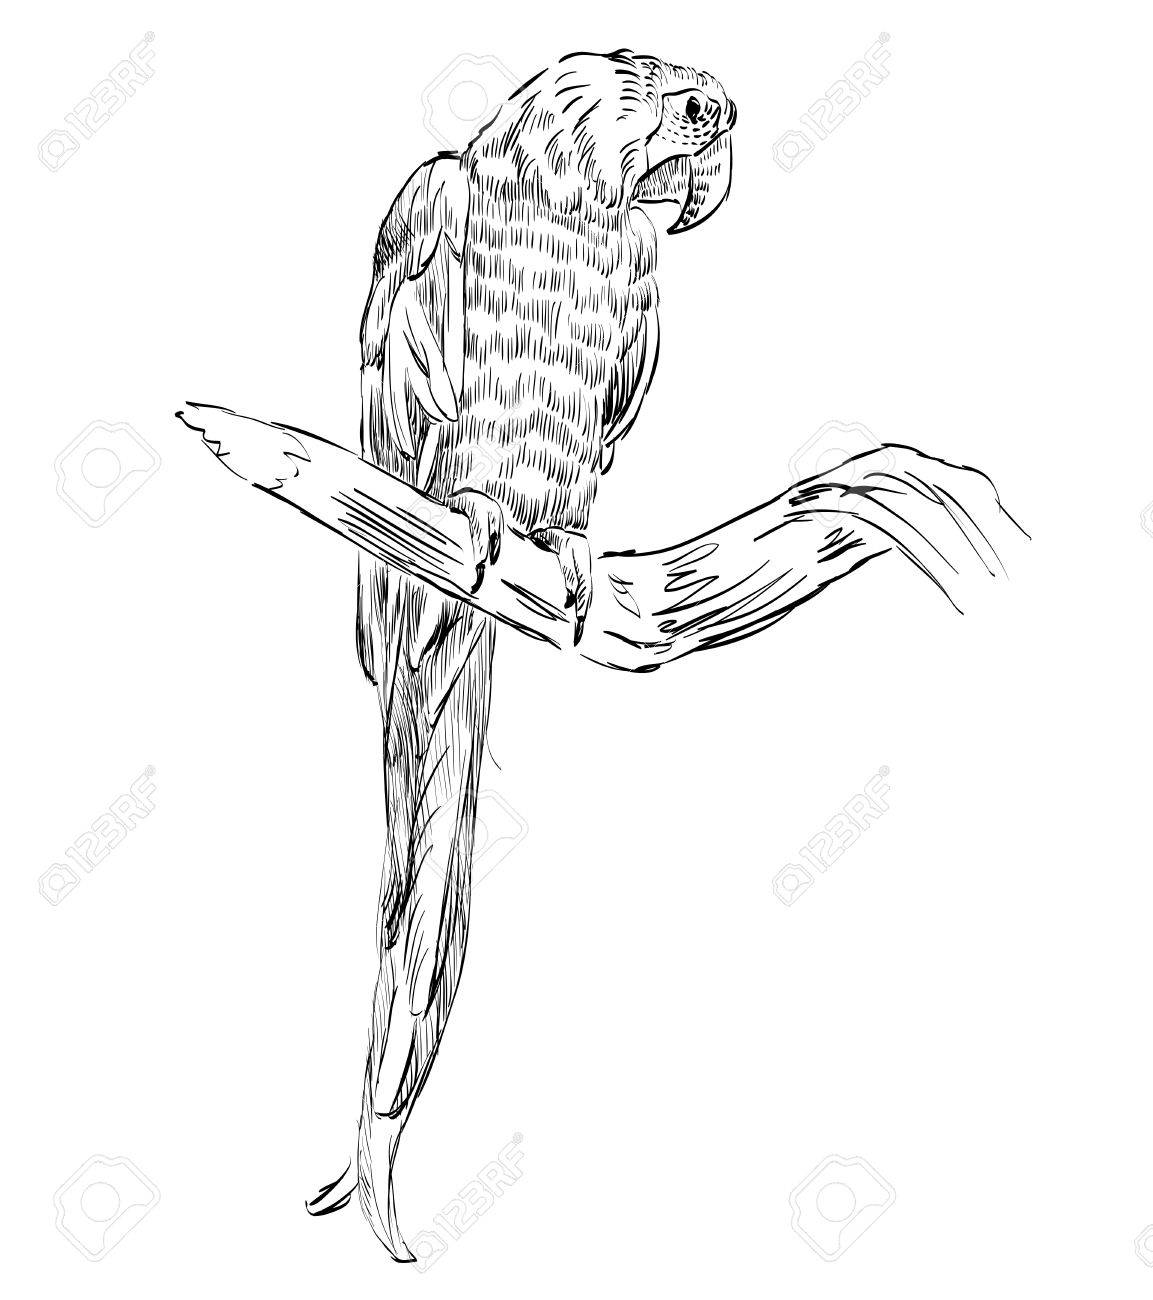 1153x1300 Vector Sketch Of A Parrot. Hand Drawn Illustration Royalty Free